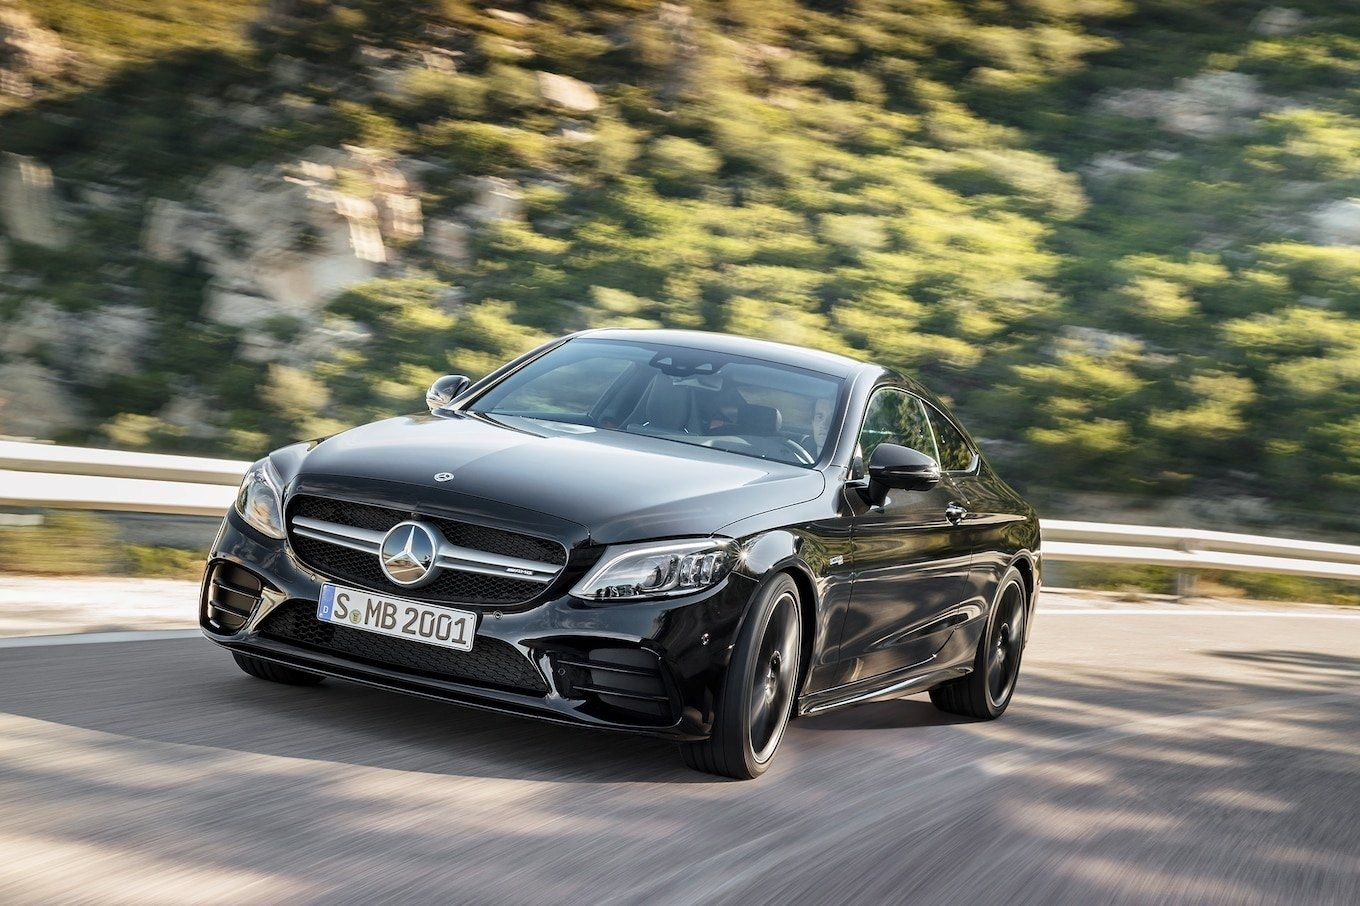 Top 2020 Mercedes C34 Model With Images Benz C New Mercedes